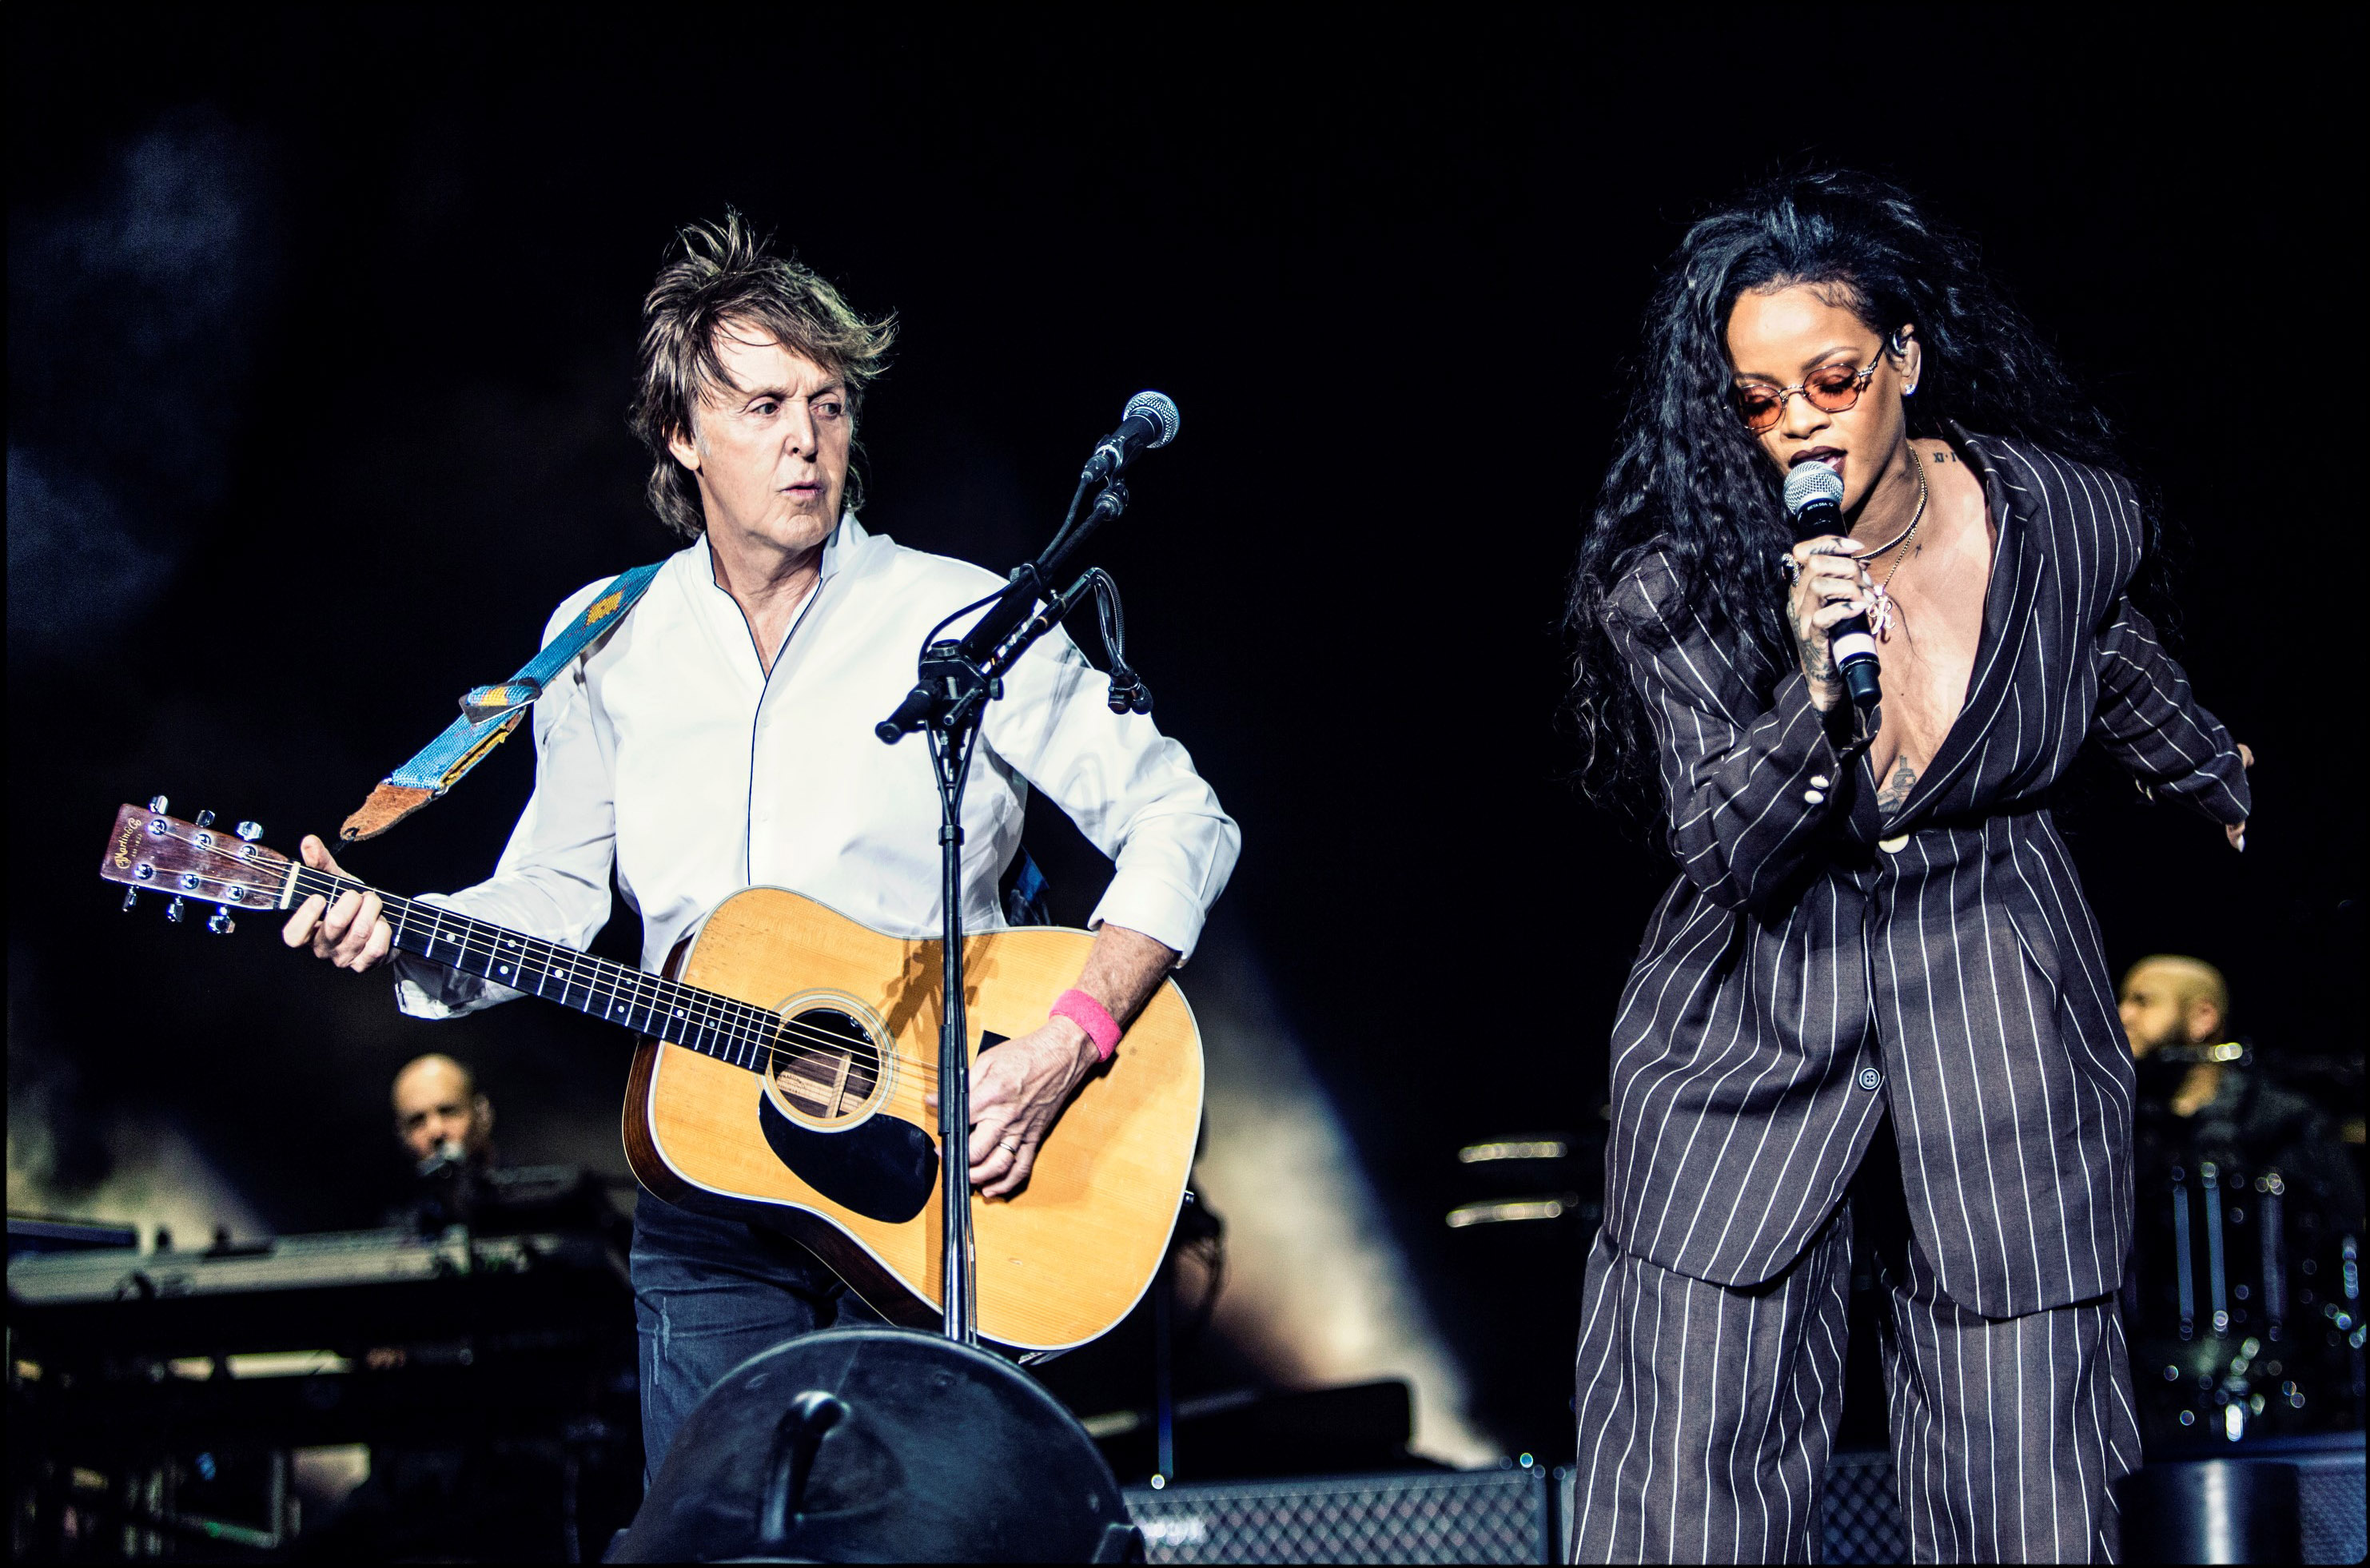 Paul McCartney performs with Rihanna at Desert Trip Weekend 2 at the Empire Polo Field on October 15, 2016 in Indio, Calif. (Getty Images)